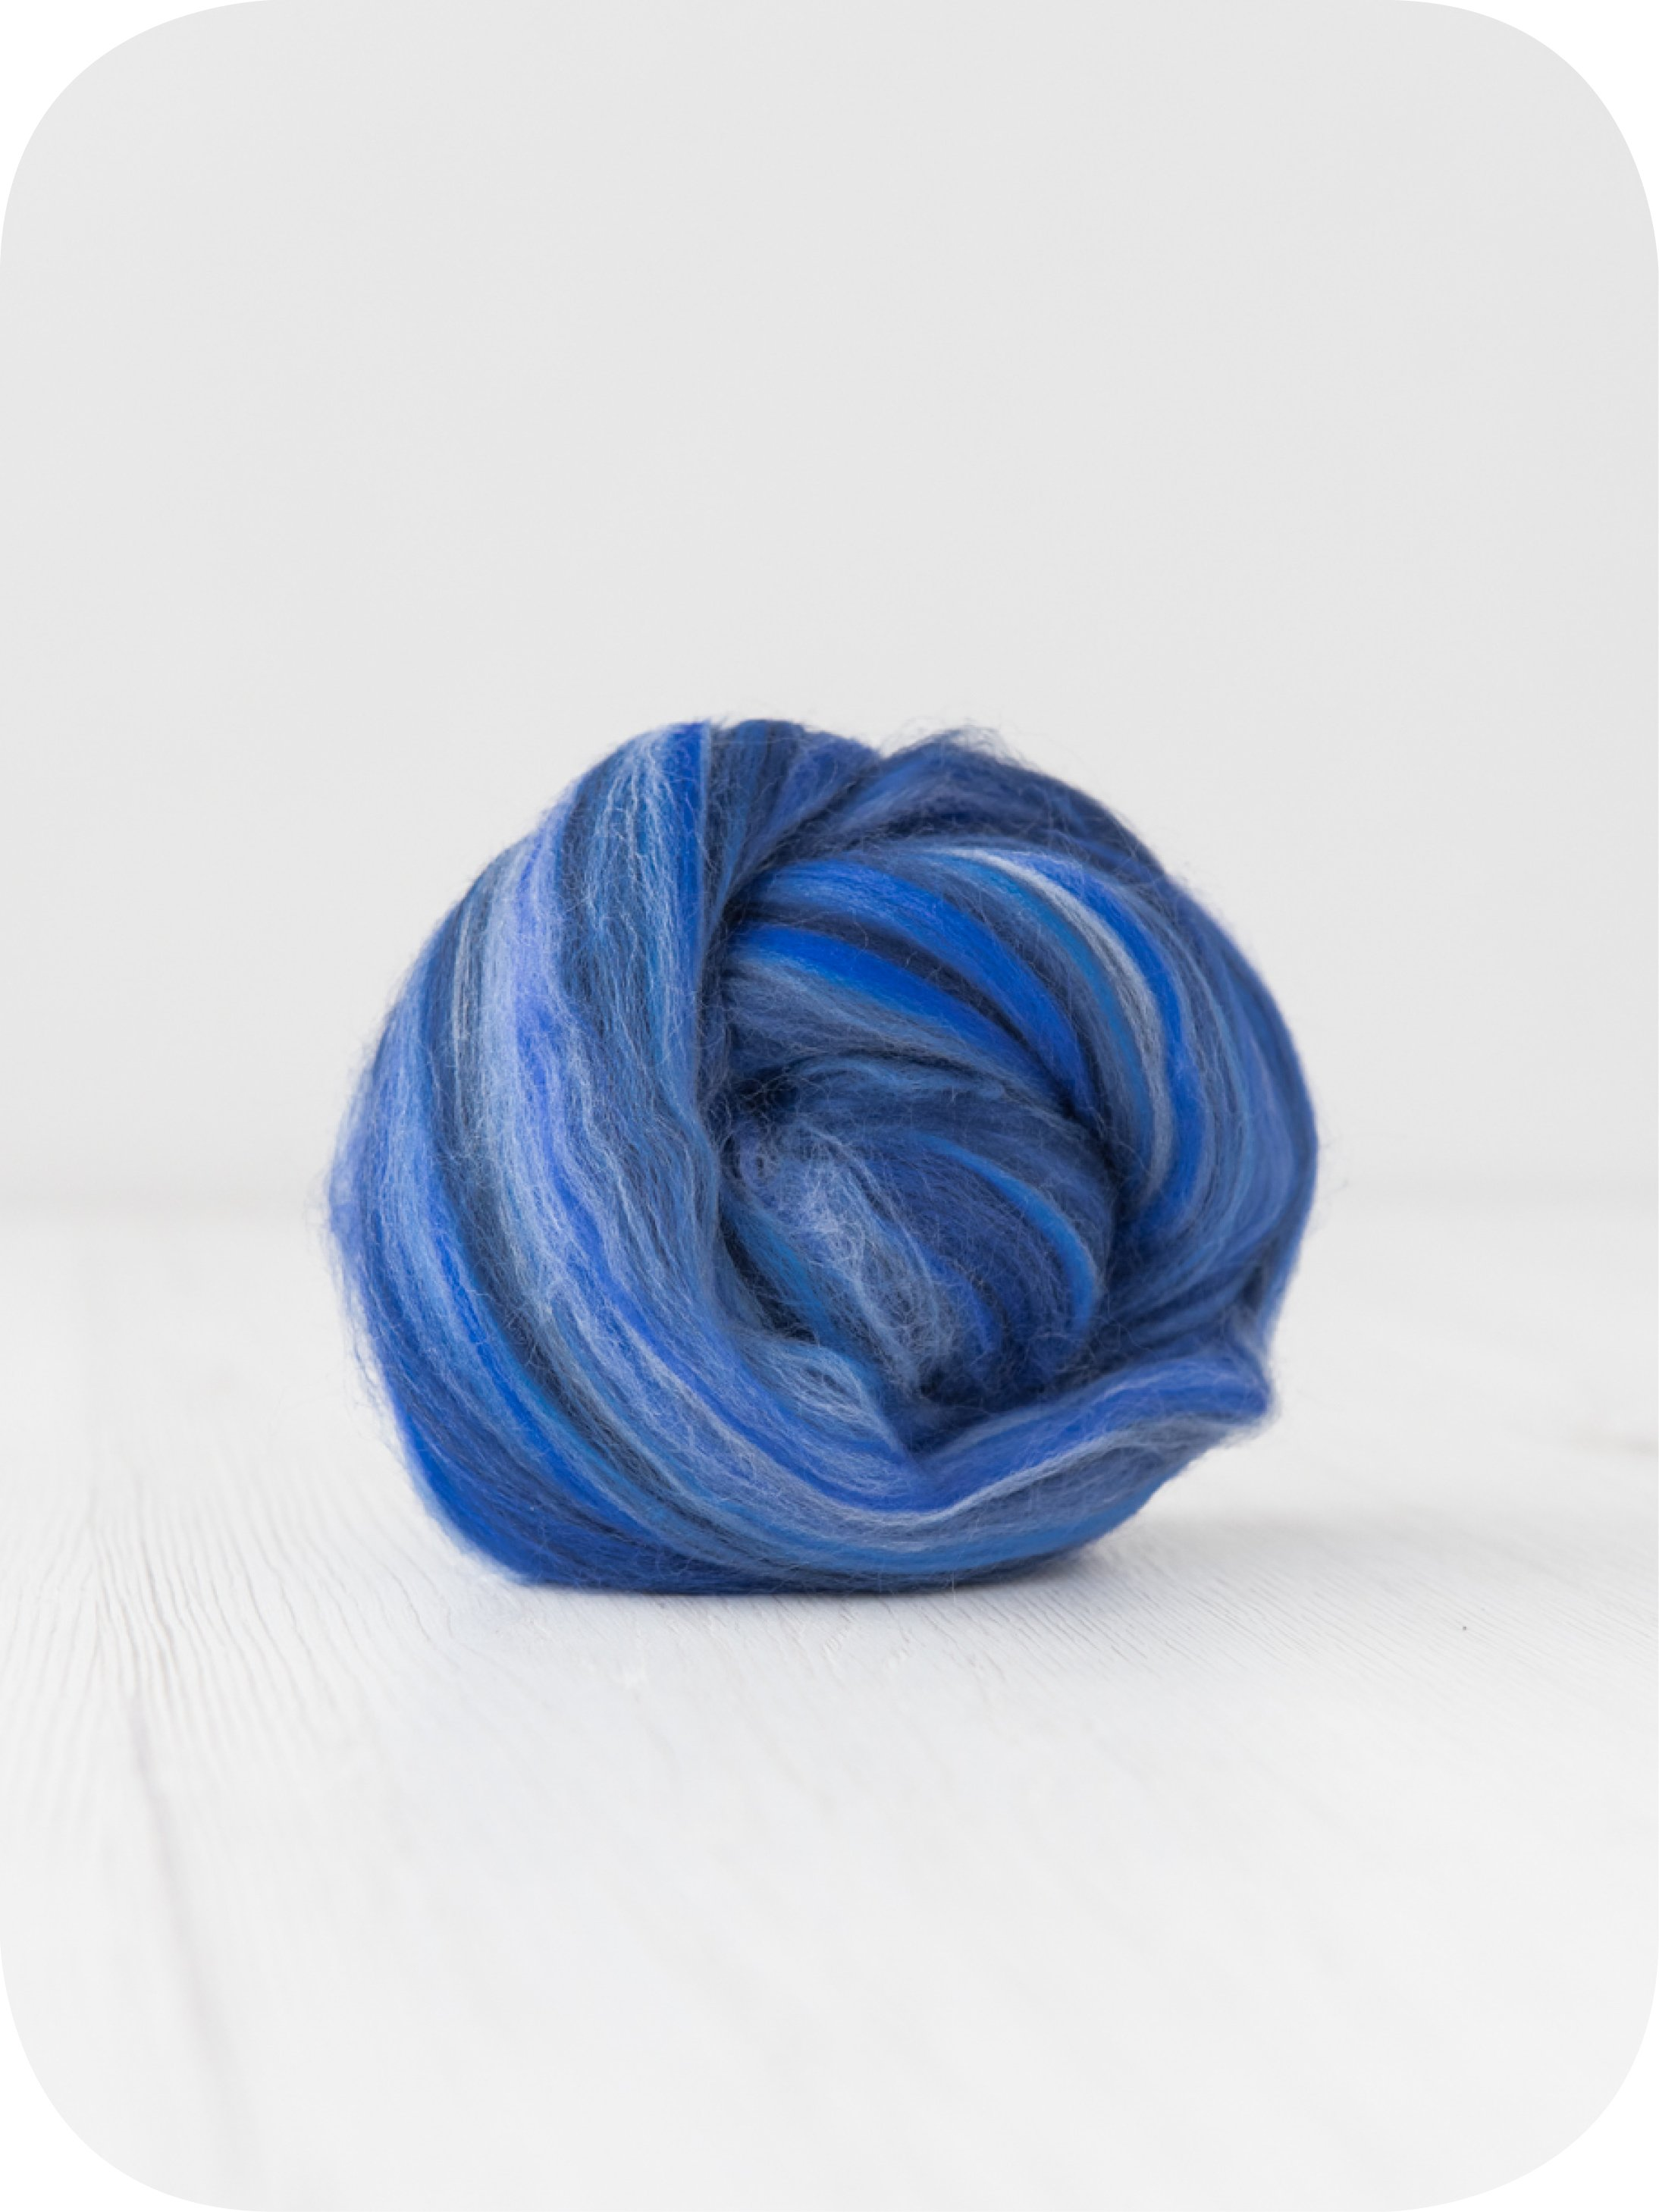 Image of 10 Kg. Extra Fine Merino Wool Tops (Sliver) - Sugar Candies Collection Ocean